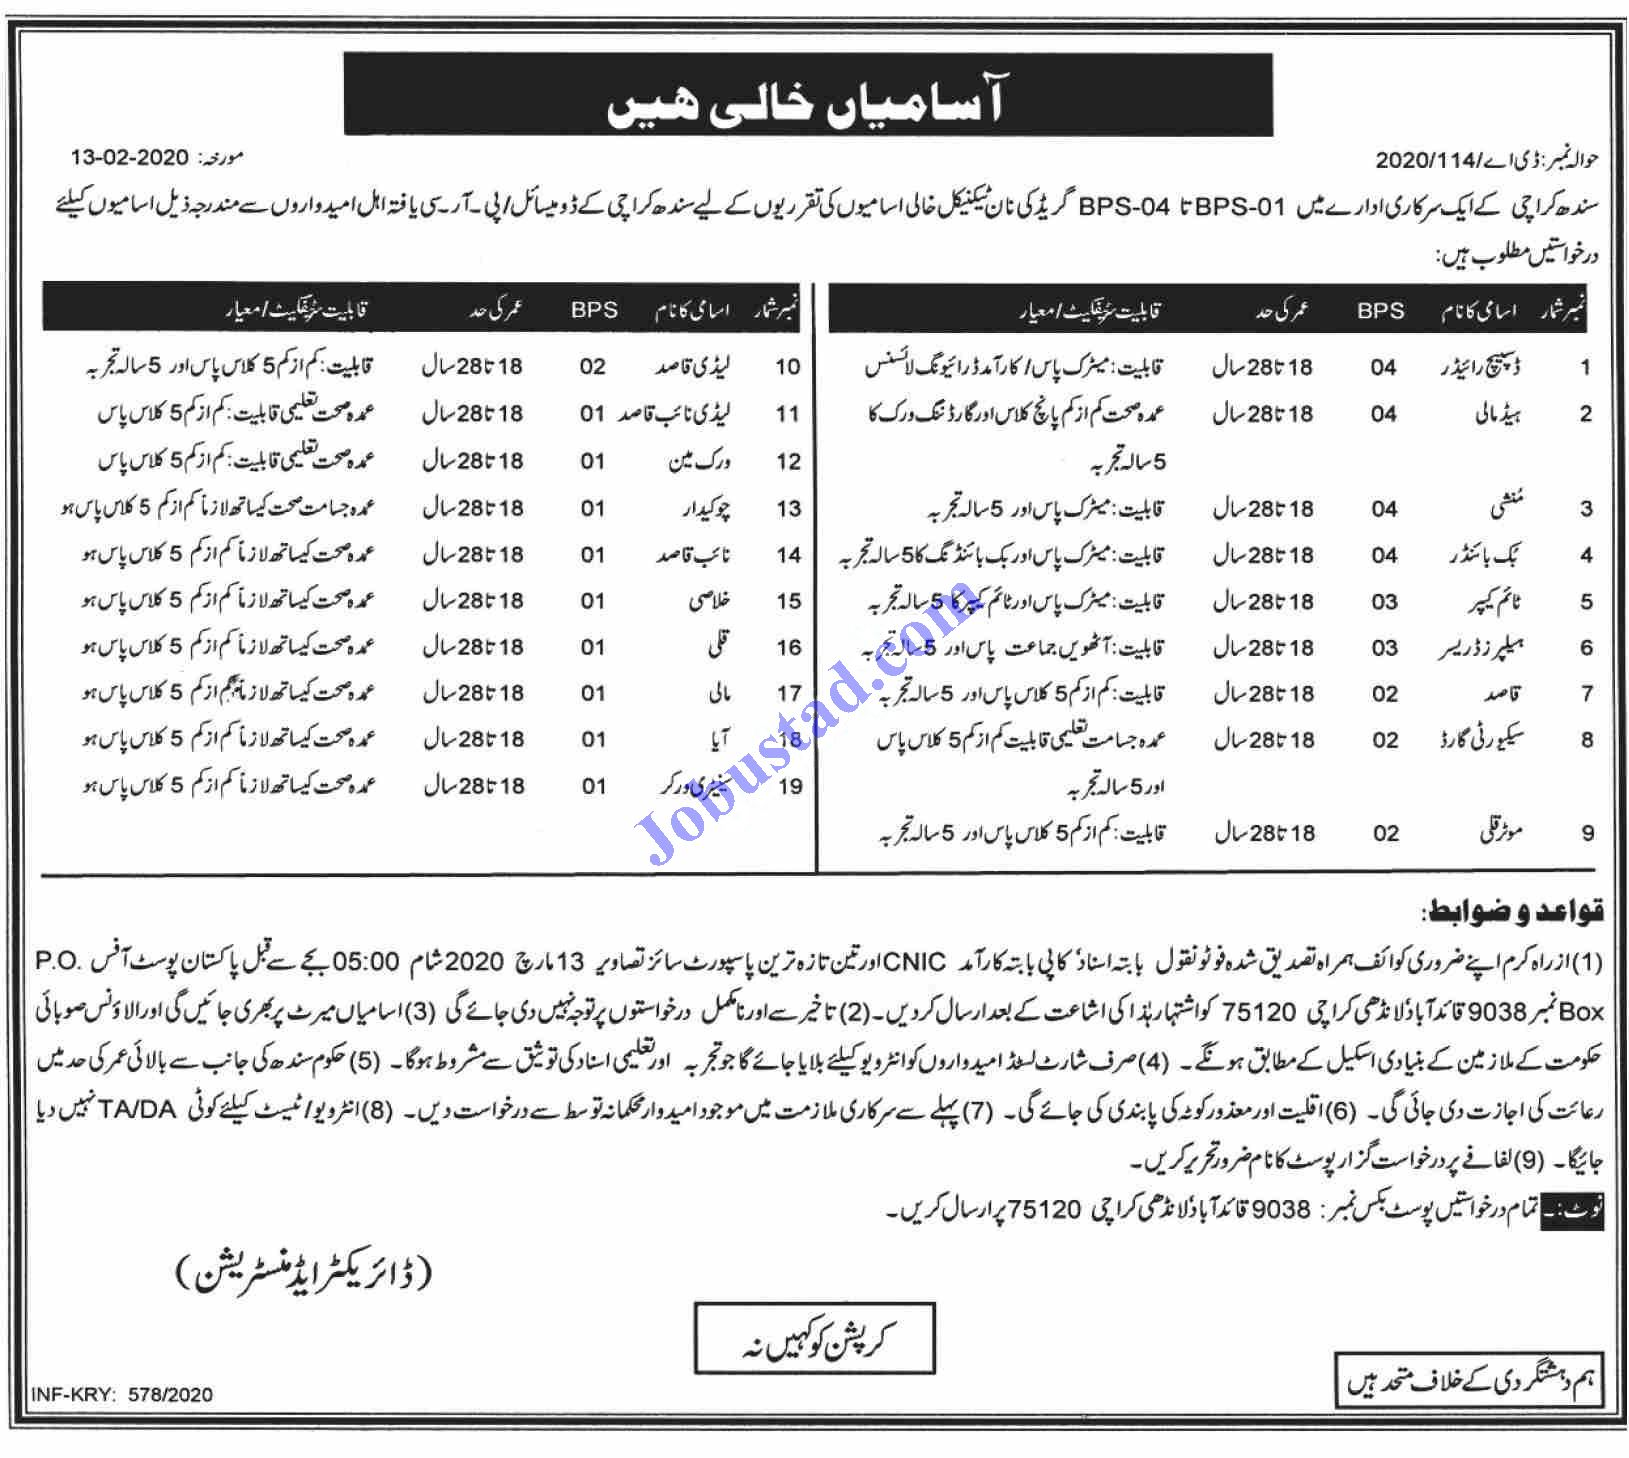 Government of Sindh Jobs in Karachi 2020 in 2020